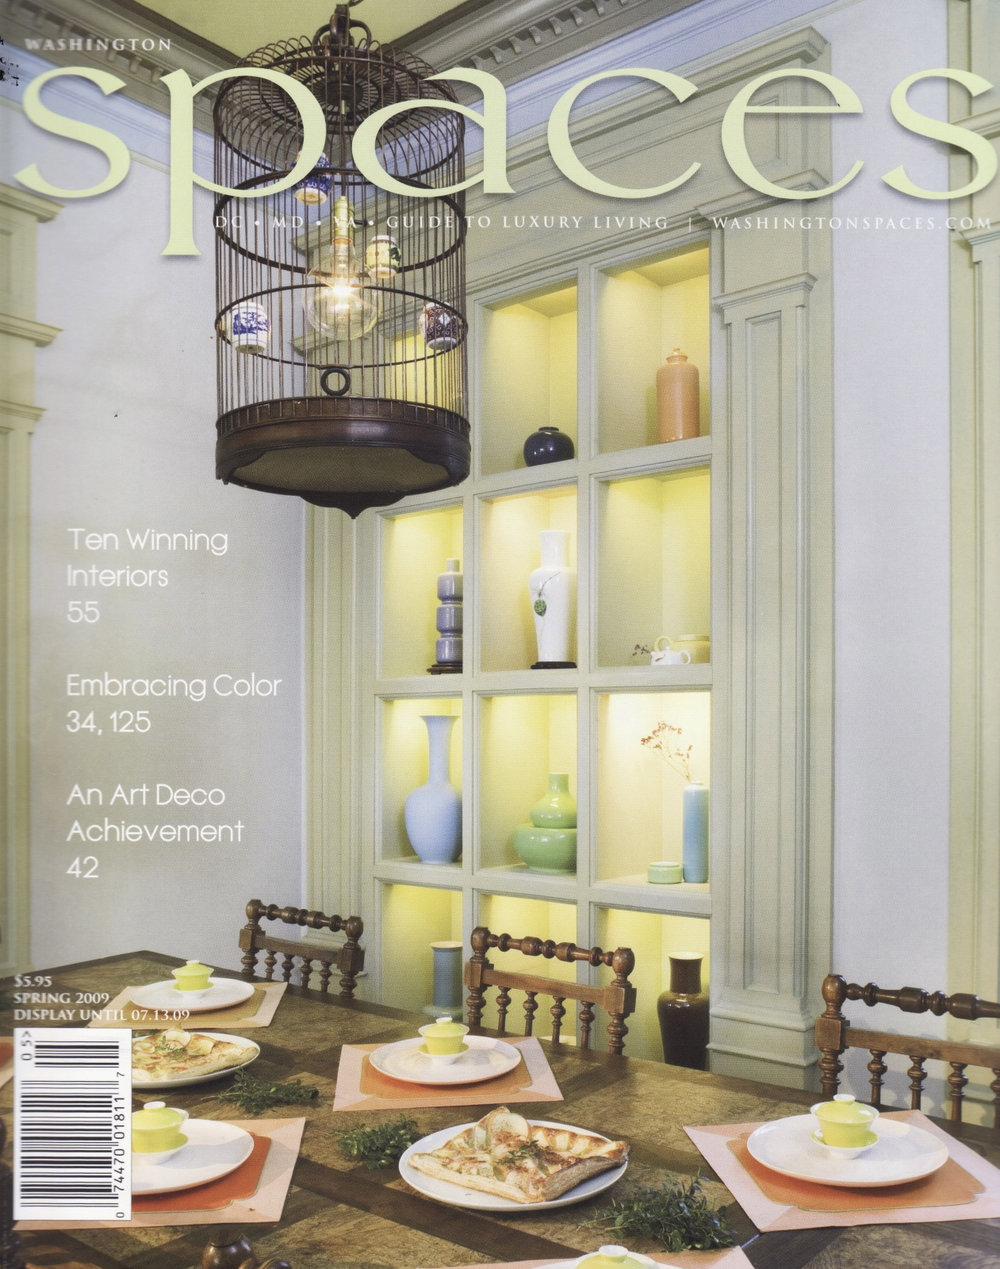 Washington Spaces Spring 2009 cover.jpg